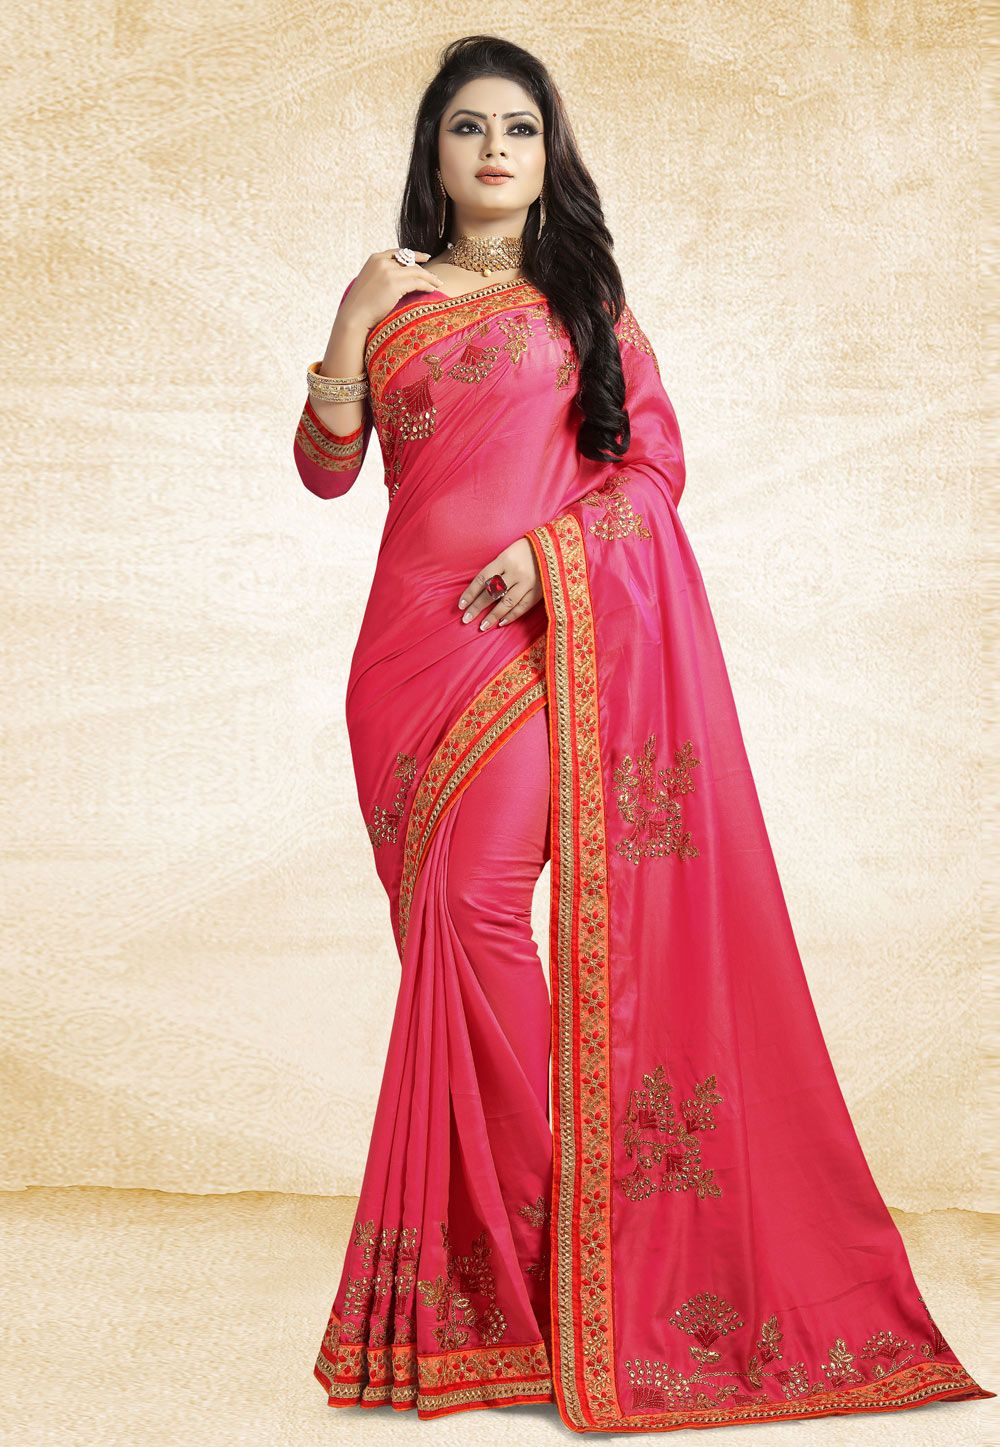 5e5f4535b2 Buy Pink Satin Embroidered Festival Wear Saree 162369 with blouse online at  lowest price from vast collection of sarees at Indianclothstore.com.